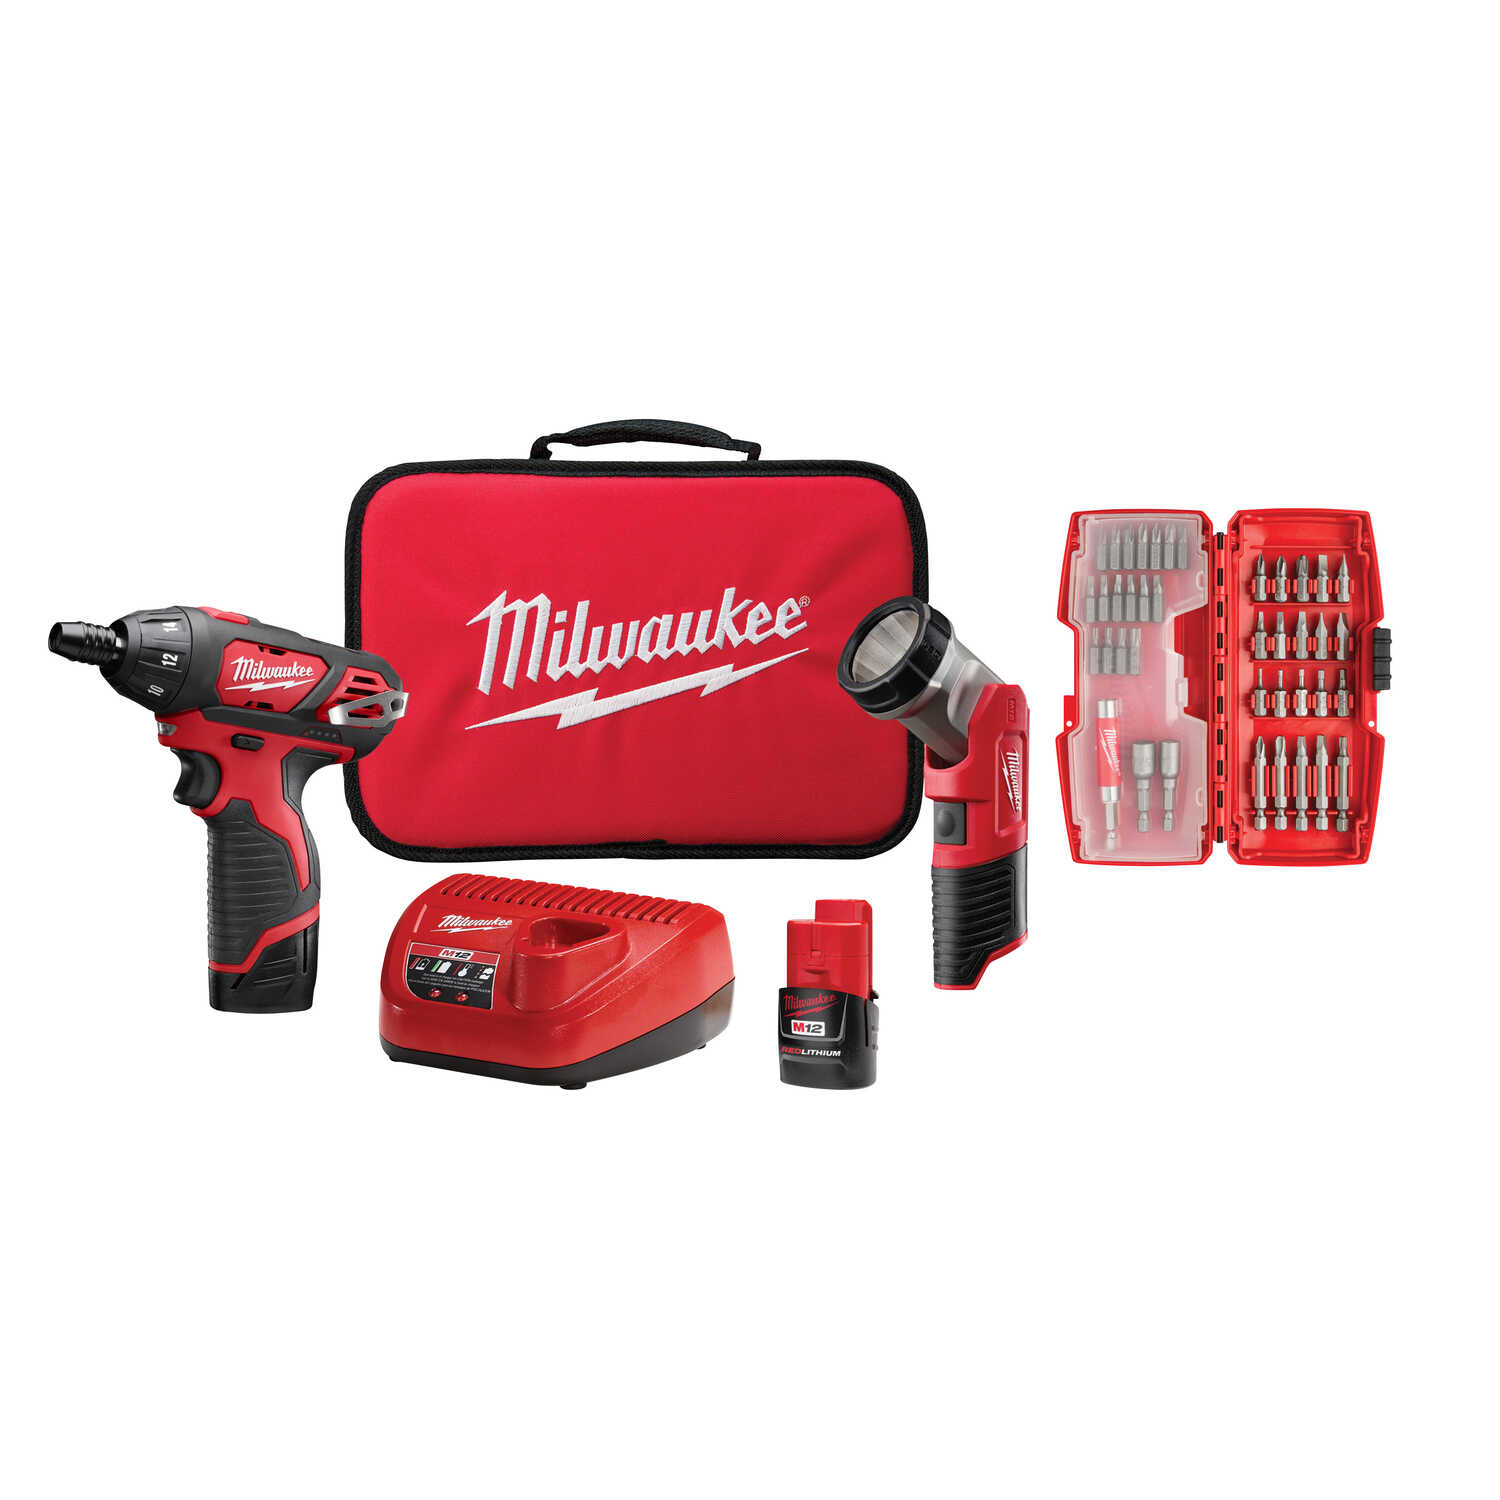 Milwaukee  M12  12 volt Brushed  Cordless Compact Drill/Driver  Kit  1/4 in. 500 rpm